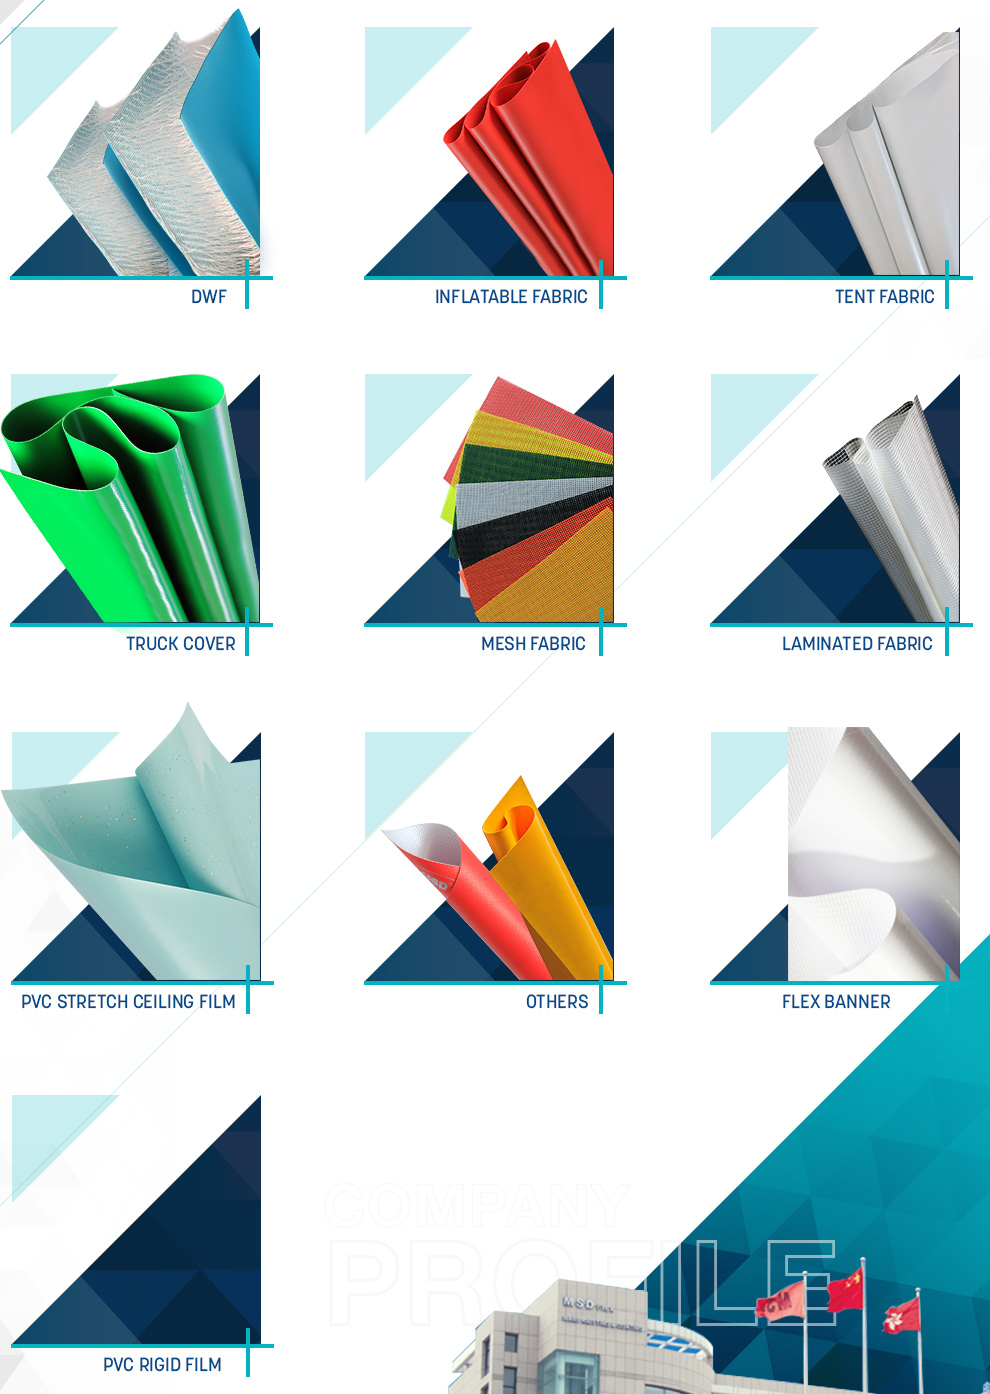 Zhejiang Msd New Material Co Ltd Pvc Stretch Ceiling Film Pvc